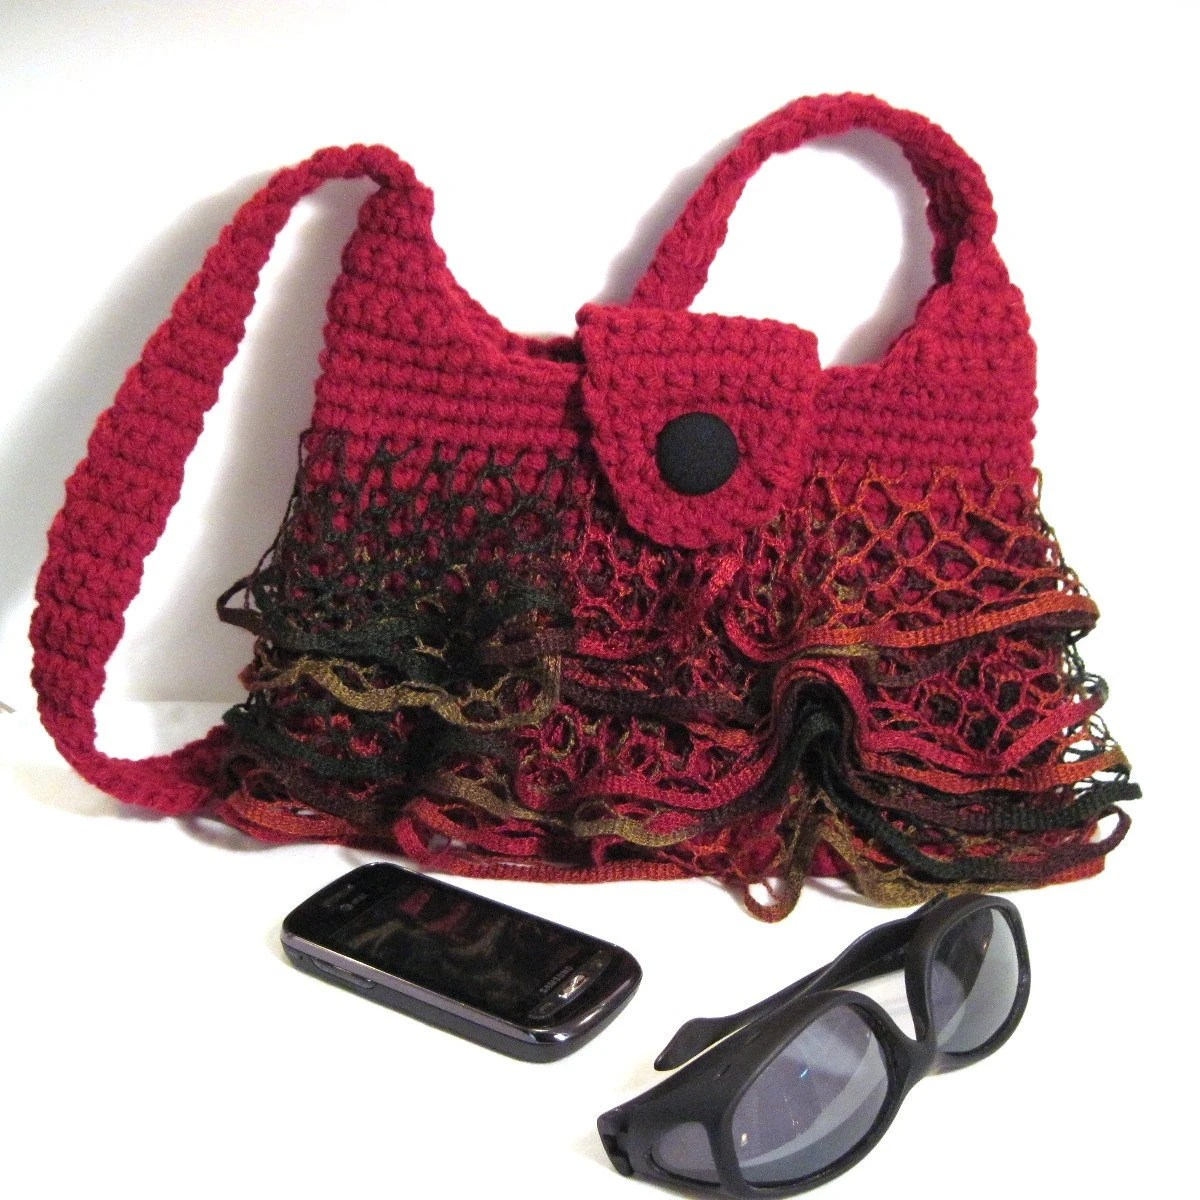 Red Ruffle Skirt Purse Fishnet Crochet Christmas Gift